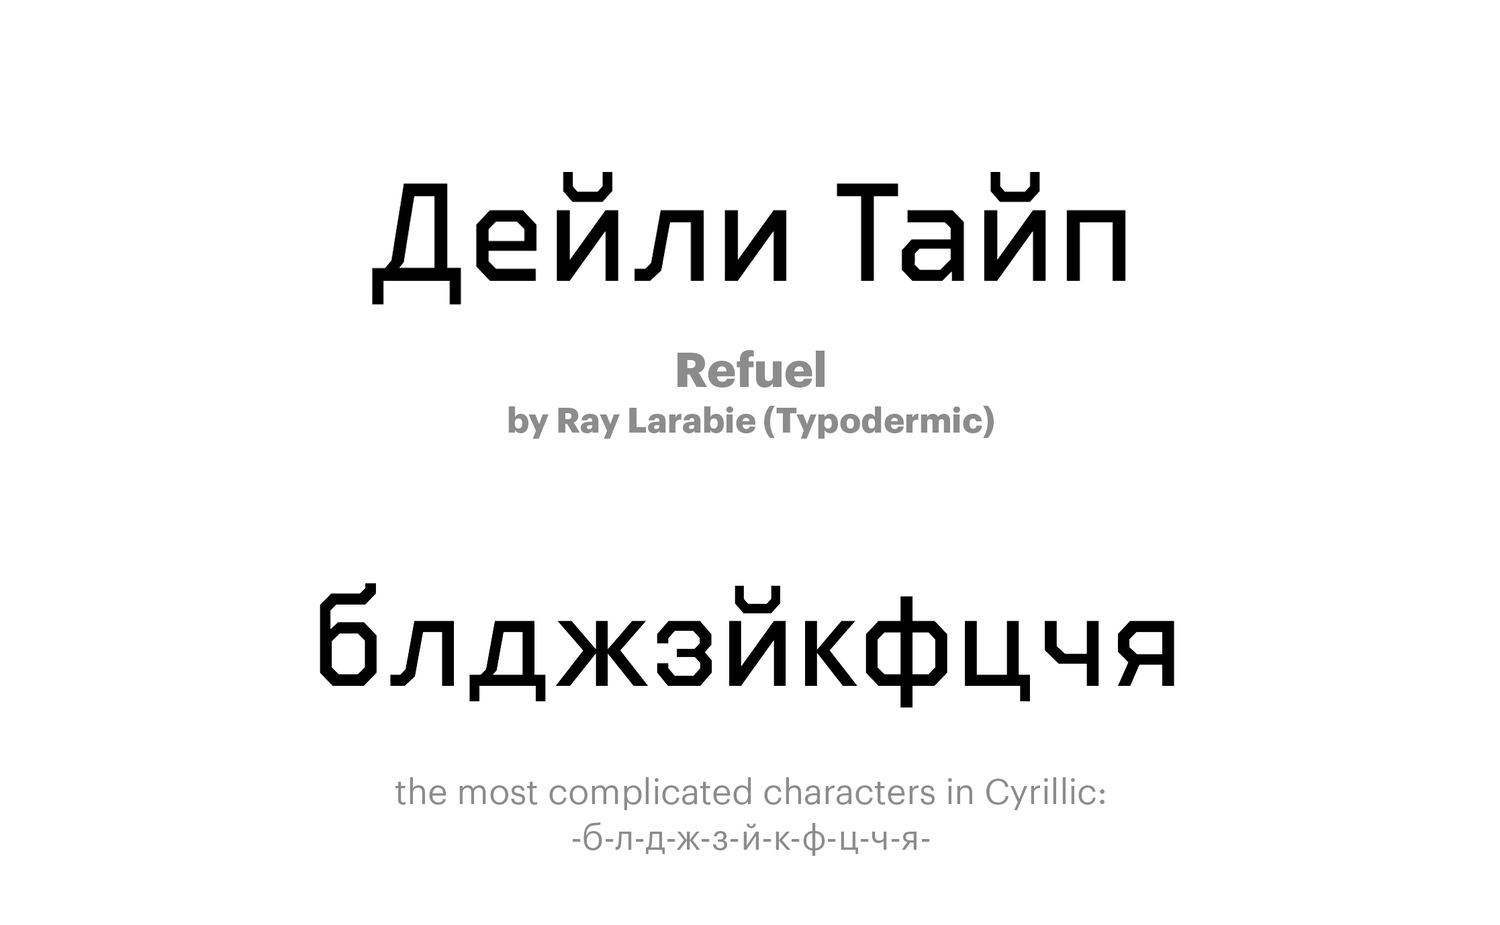 Refuel-by-Ray-Larabie-(Typodermic)